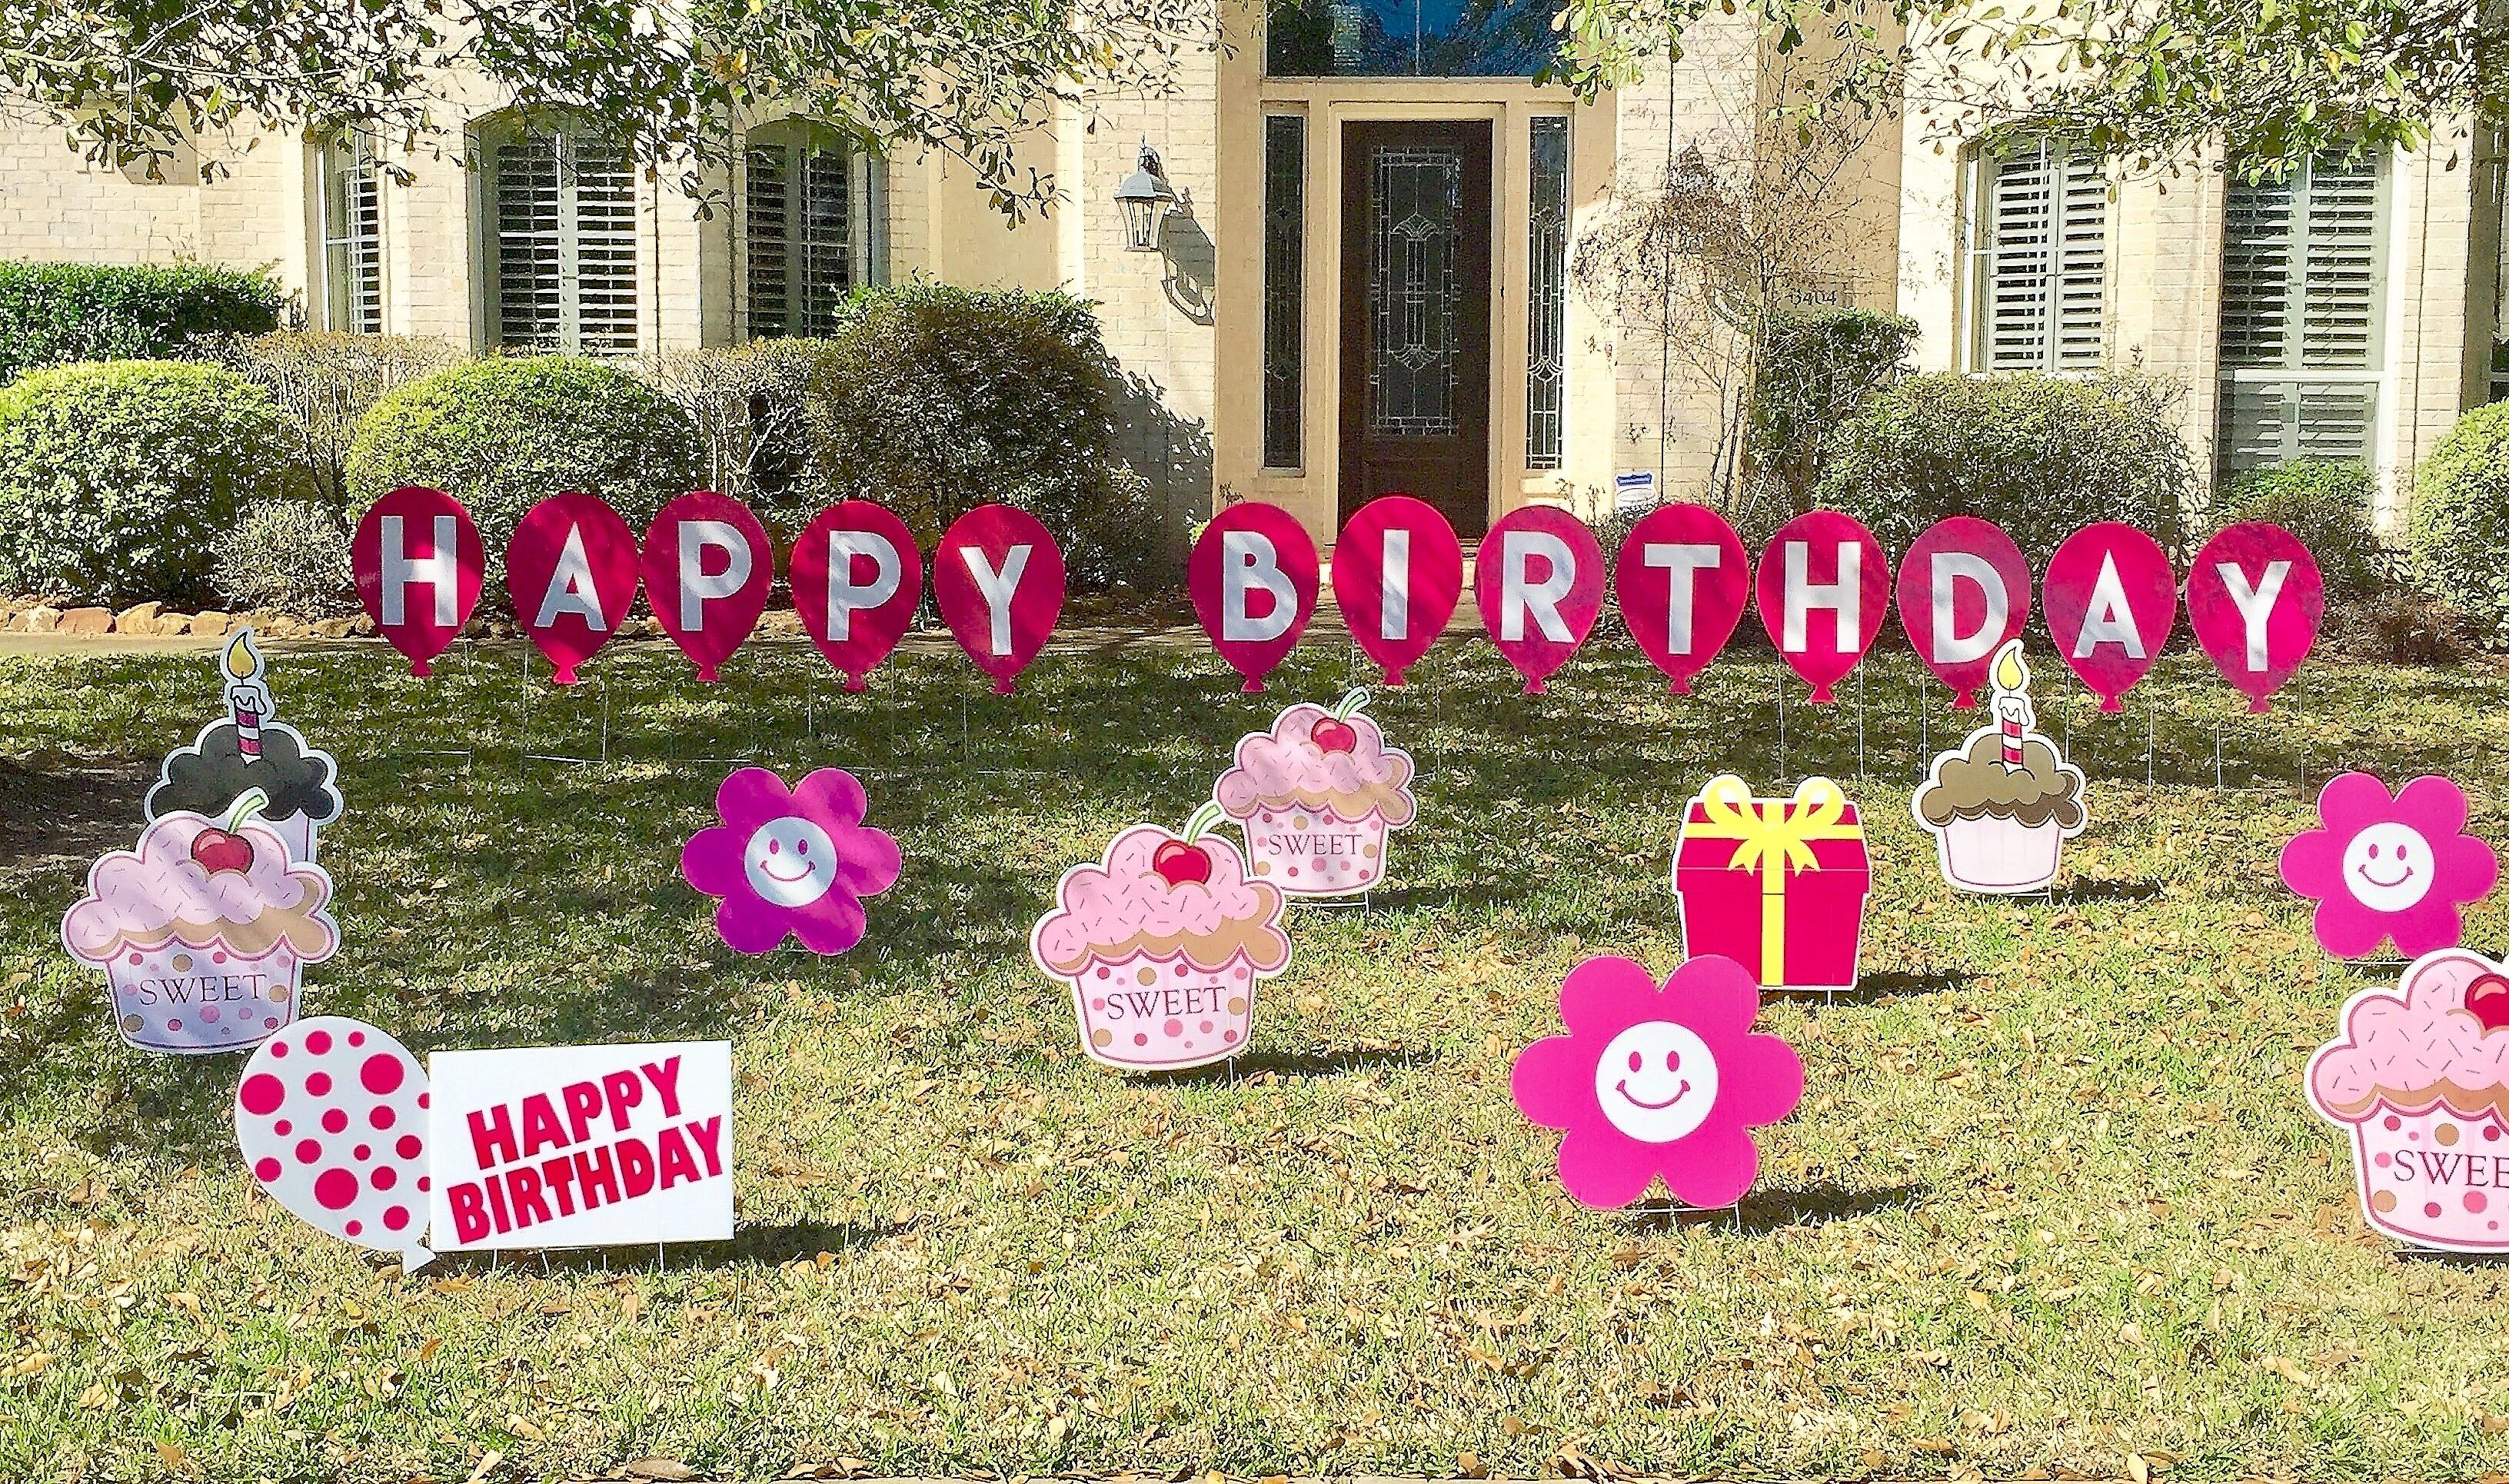 Flamingos 2 go delivering smiles one celebration at a time pinkbirthdayballoons kristyandbryce Images